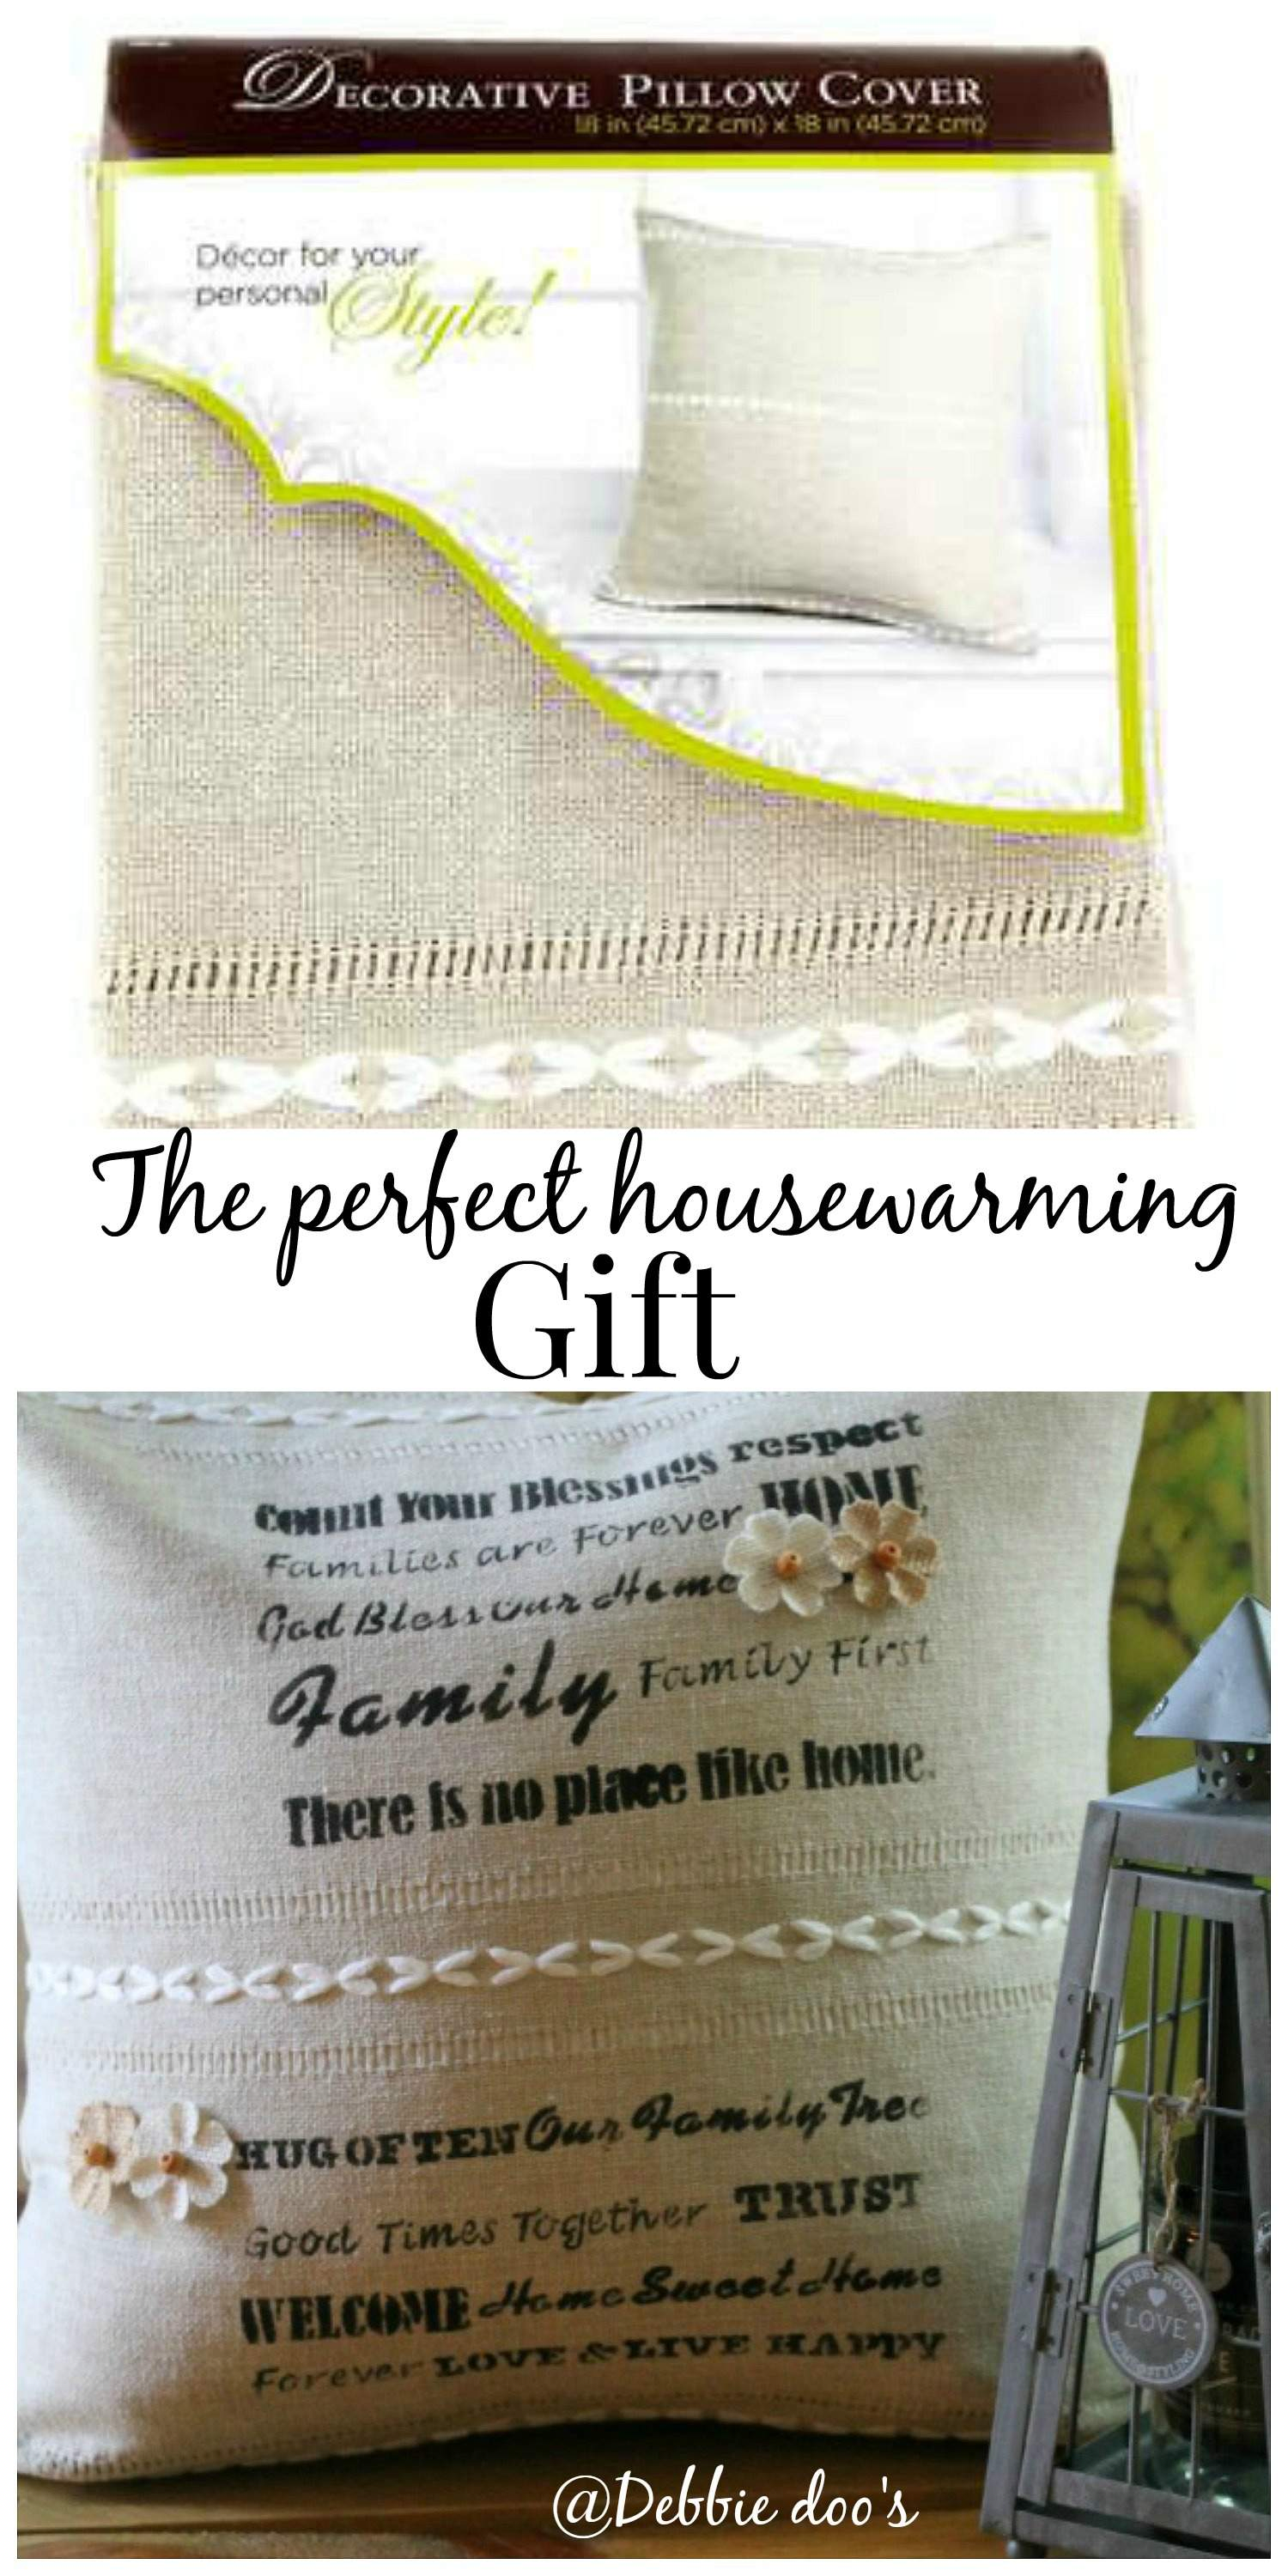 Diy housewarming gift idea - Debbiedoos